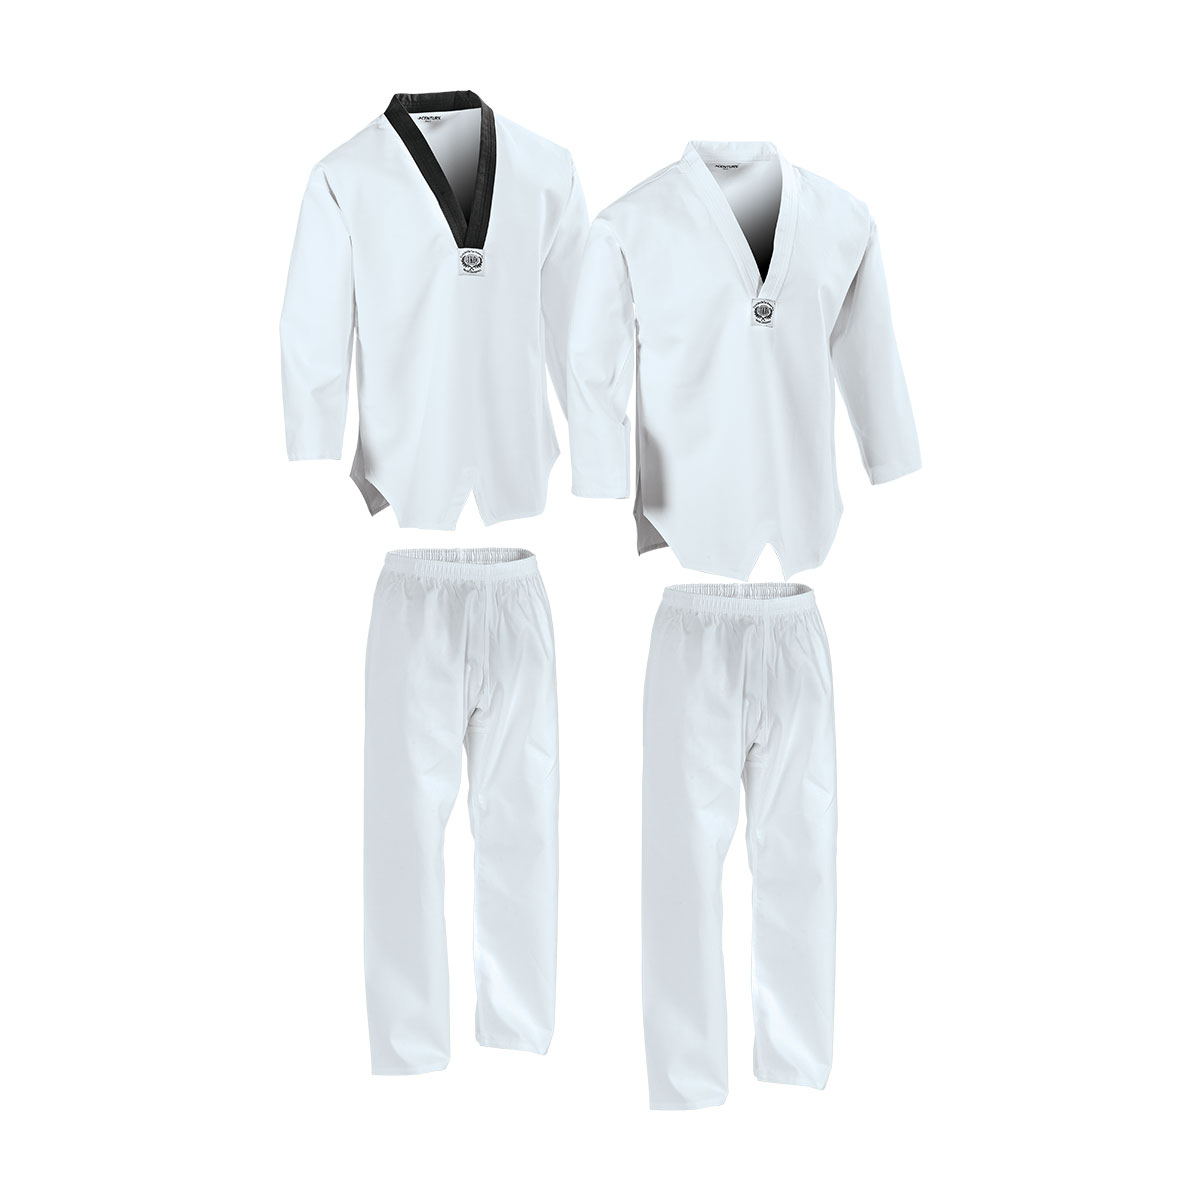 Taekwondo Uniform V-neck Middleweight